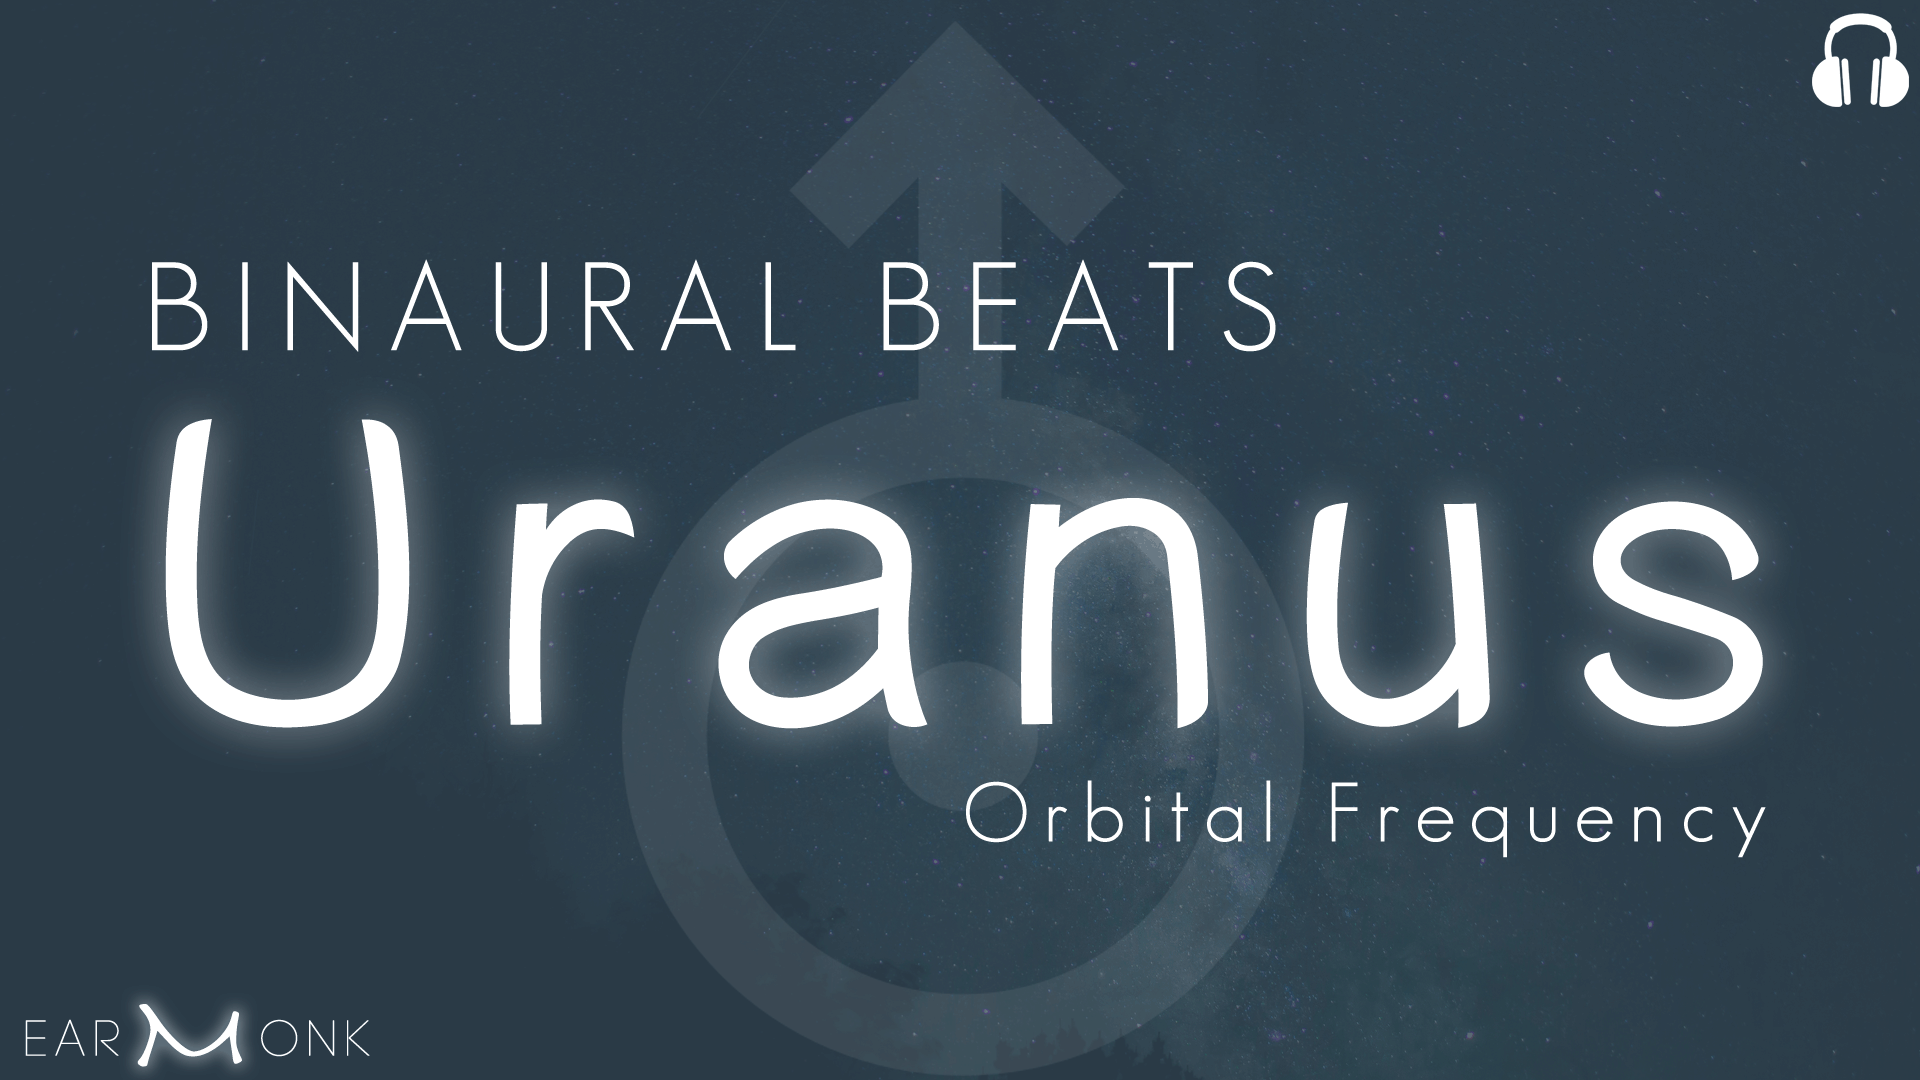 Theta binaural beats uranus frequency